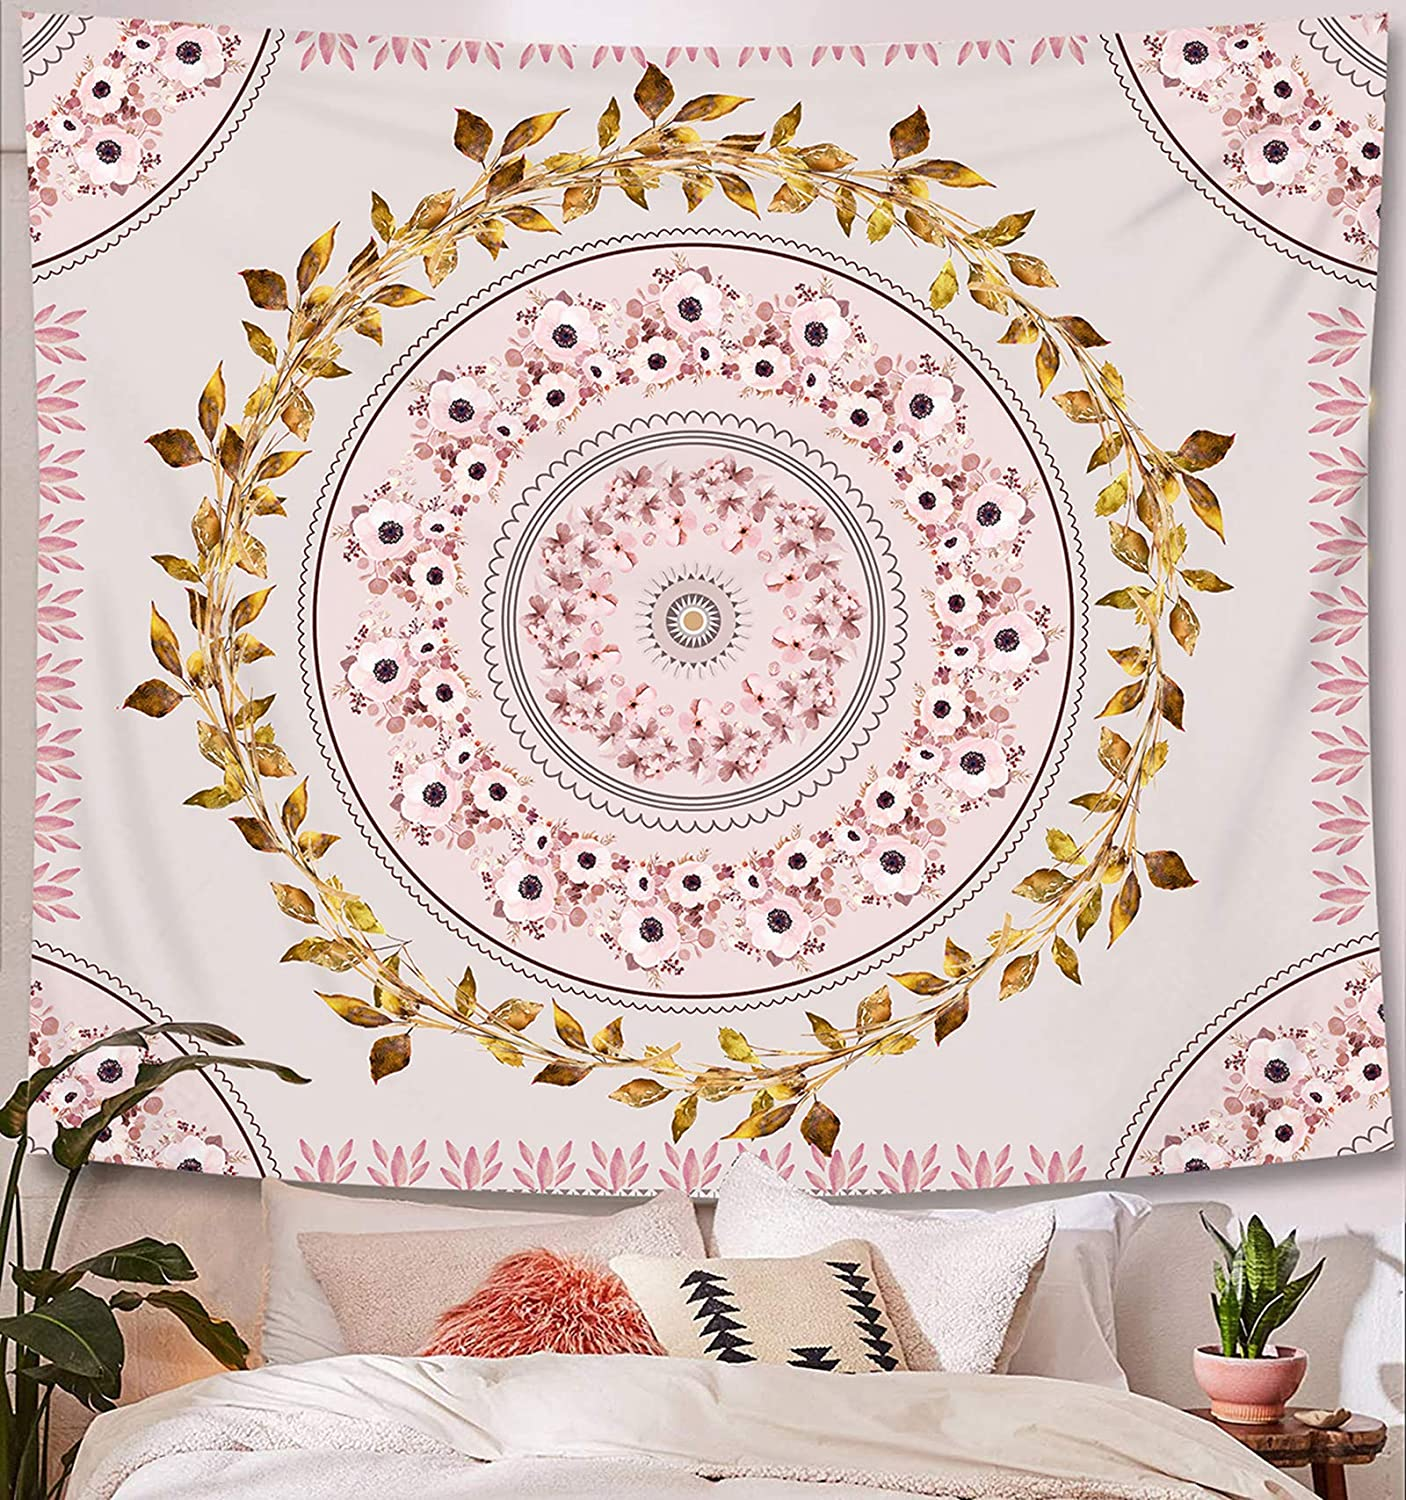 Pink Tapestry Wall Hanging Bohemian, Zodight Mandala Floral Medallion Hippie Tapestry with Gold Leaf Pink Flower Aesthetic Wreath Design, Wall Decor Blanket for Bedroom Home Dorm